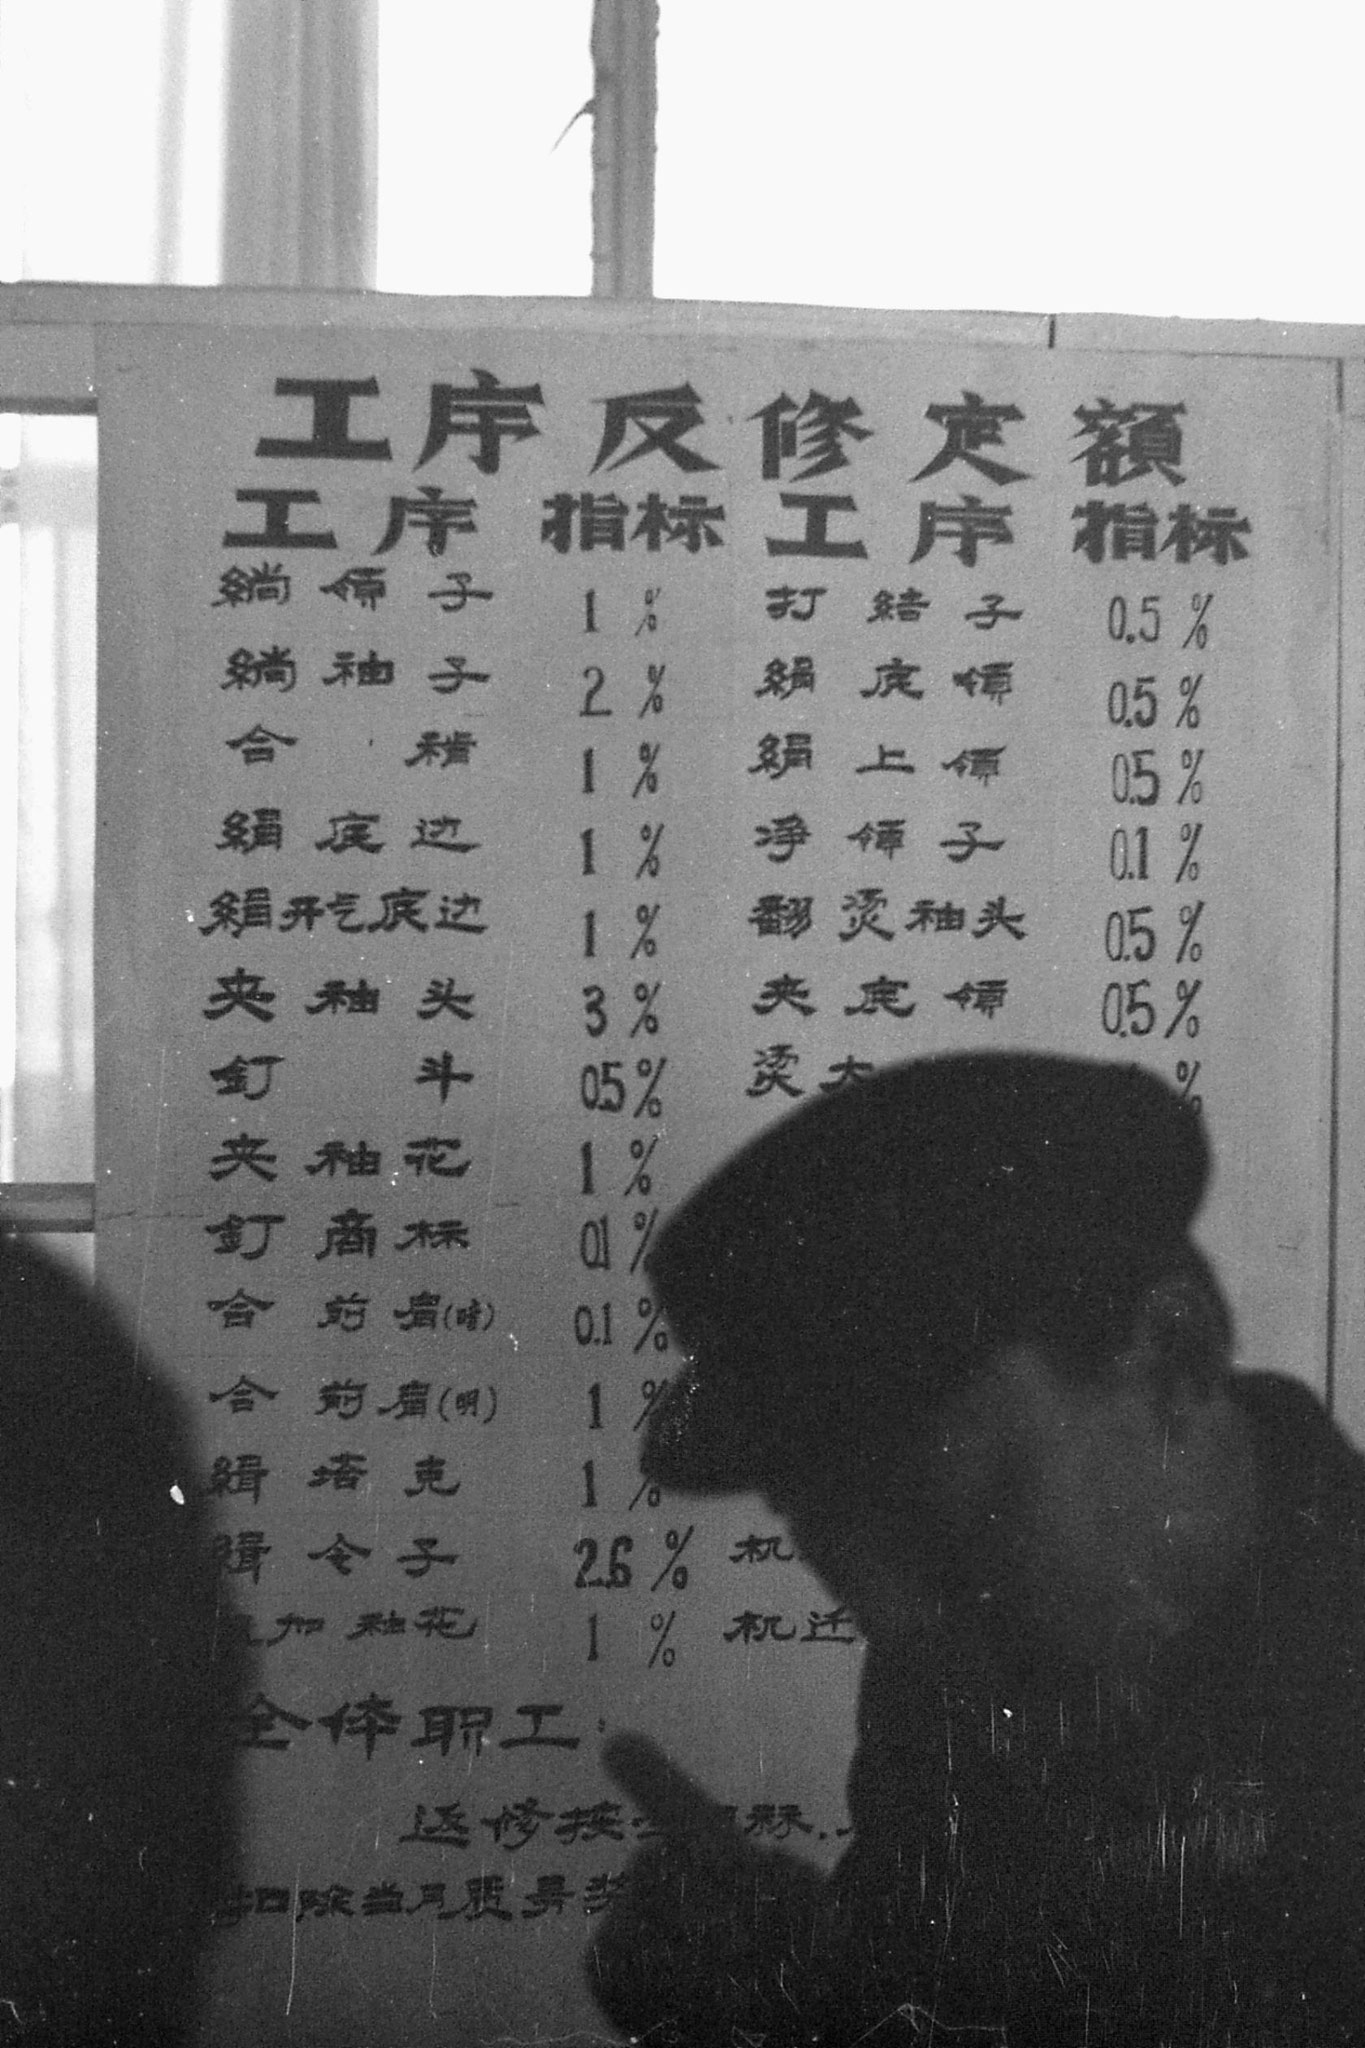 3/12/1988: 15: day trip to Shun Yi